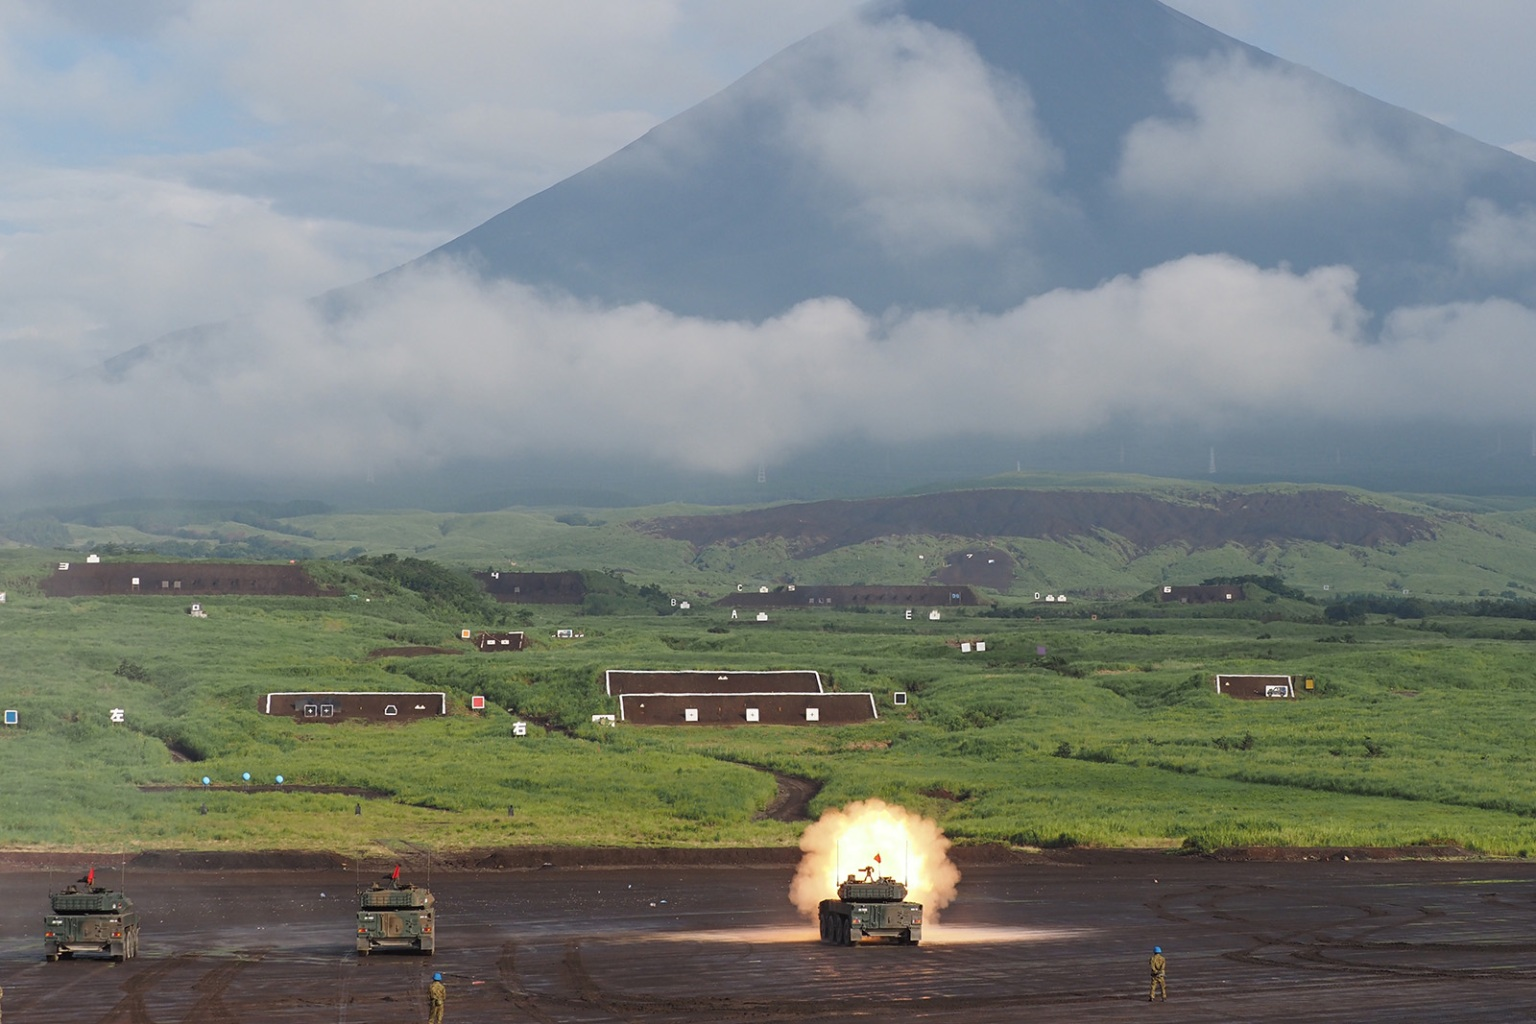 A Japan Ground Self Defense Forces tank fires during a training exercise at the foot of Mt. Fuji in Gotemba, Shizuoka prefecture, on Aug. 22. TOSHIFUMI KITAMURA/AFP/Getty Images